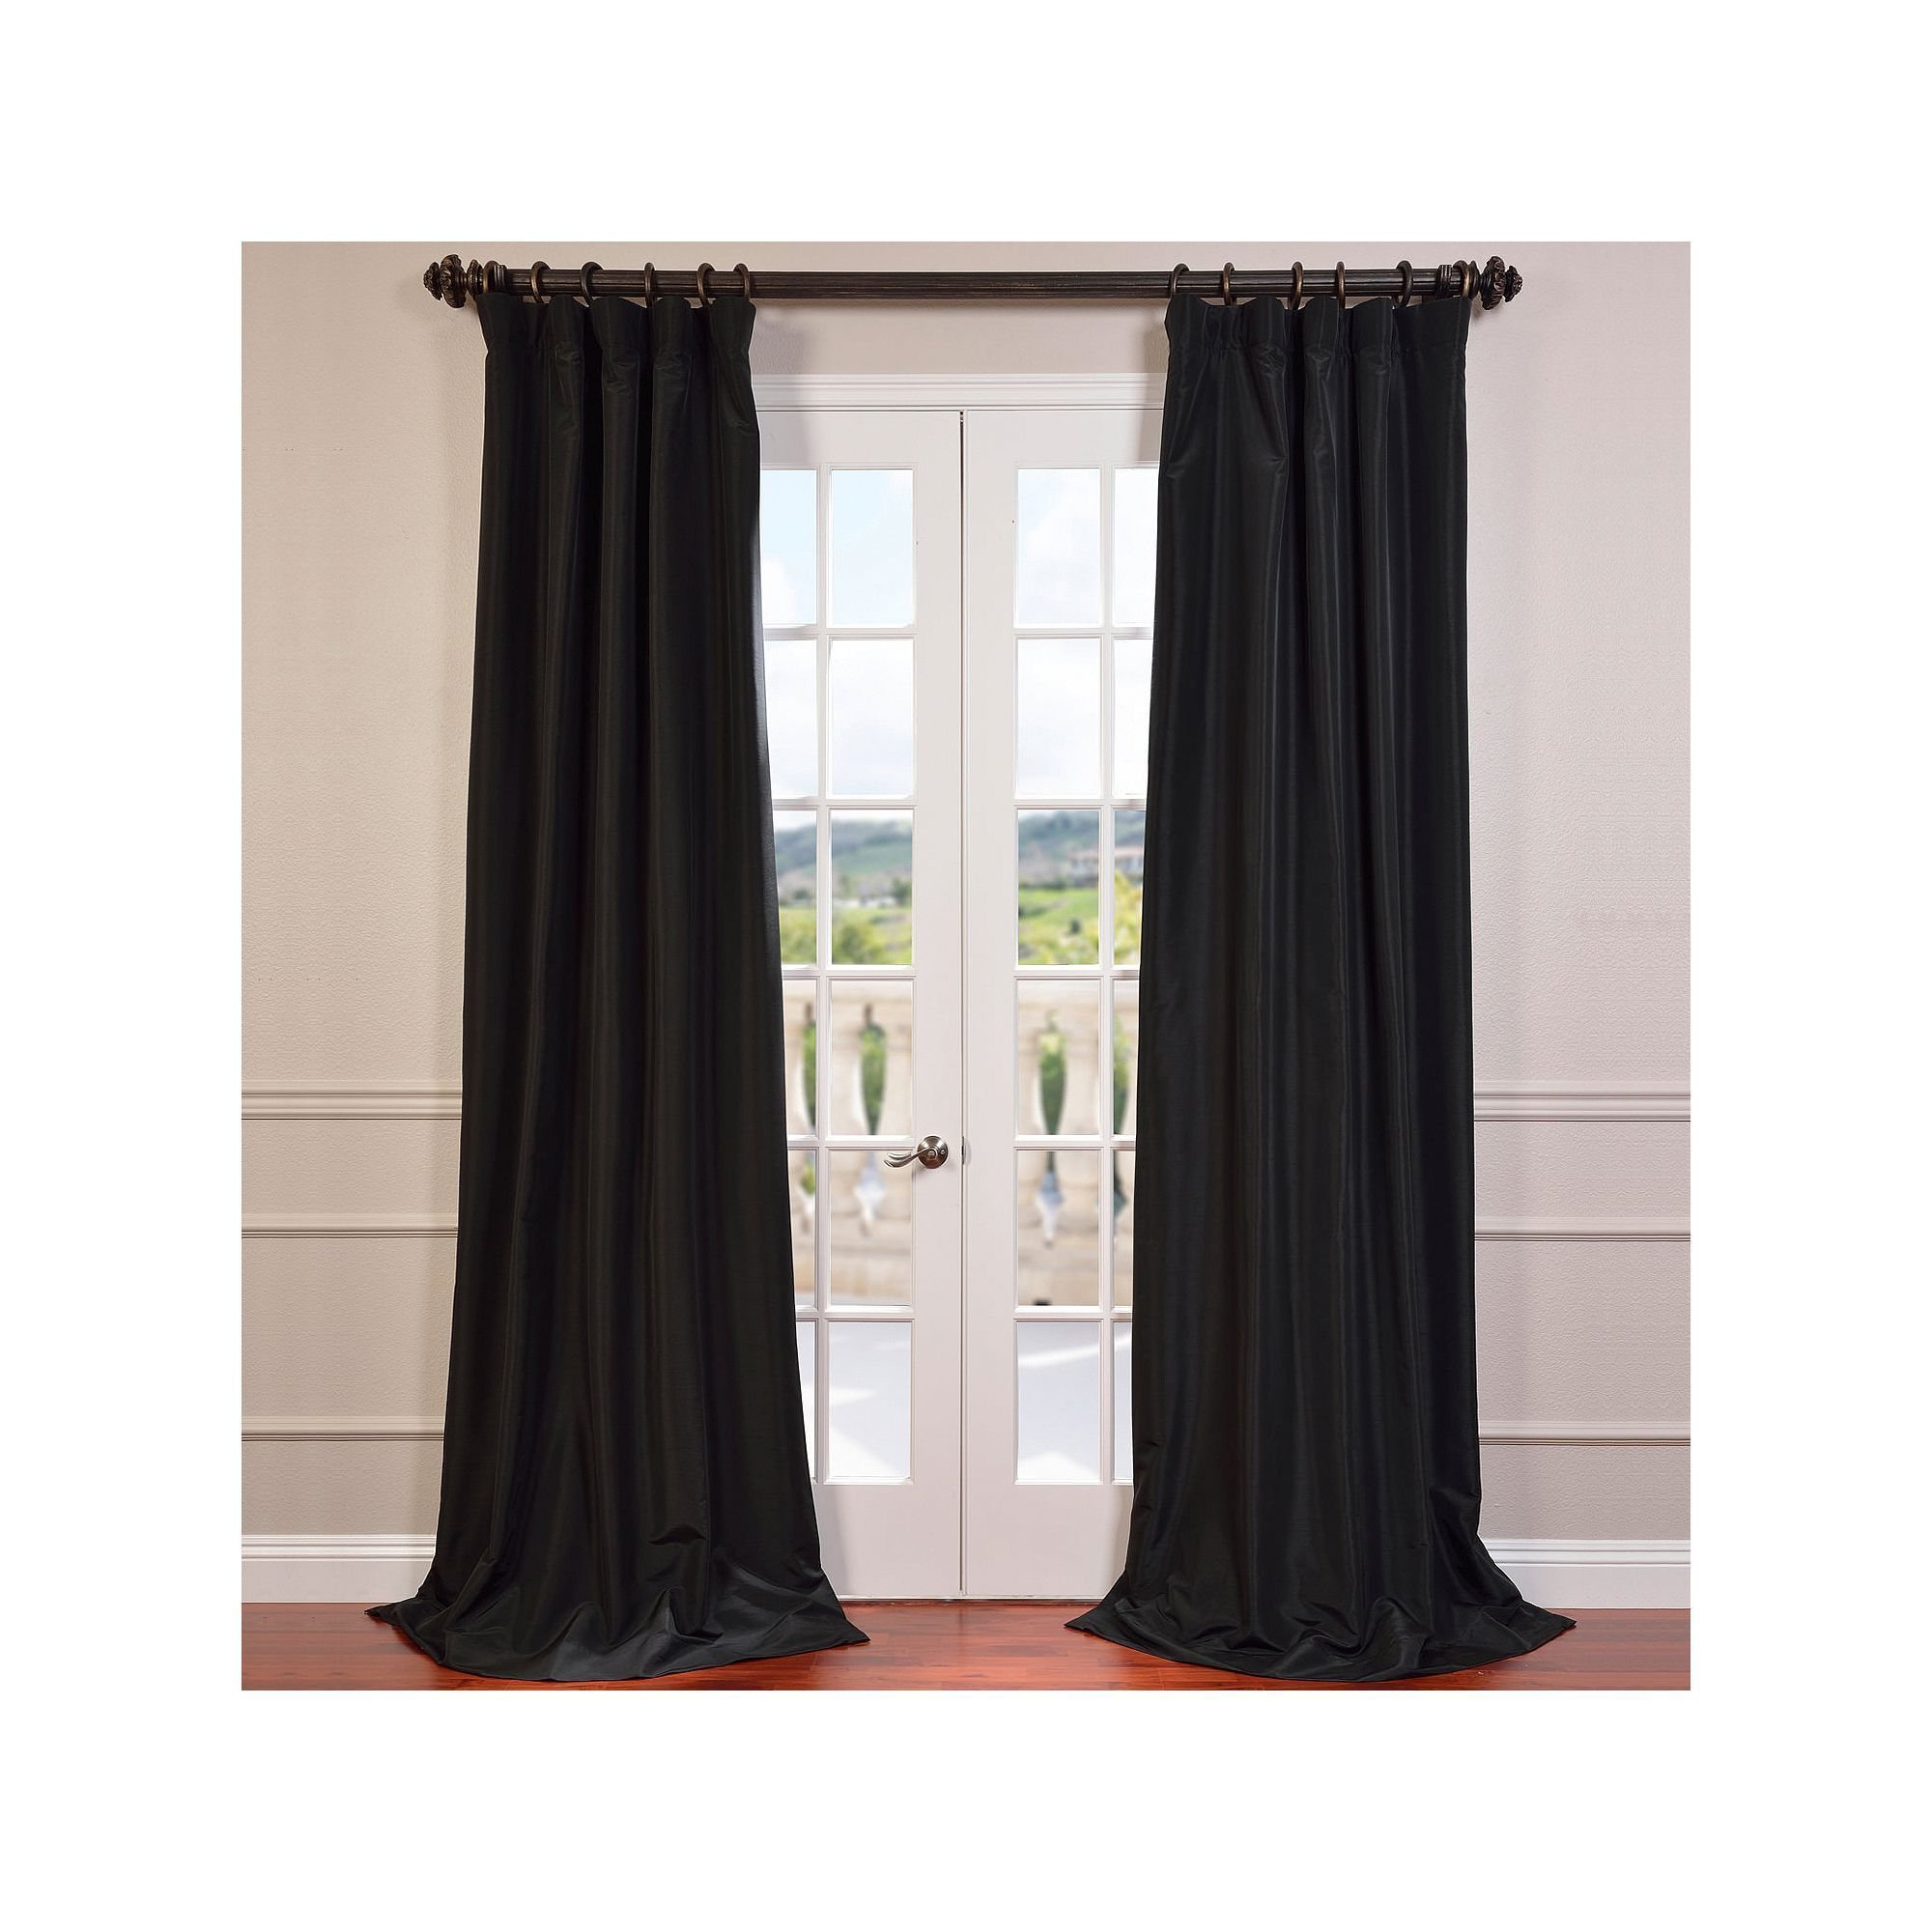 Favorite Warm Black Velvet Single Blackout Curtain Panels Pertaining To Eff Blackout 1 Panel Faux Silk Taffeta Window Curtain (Gallery 12 of 20)